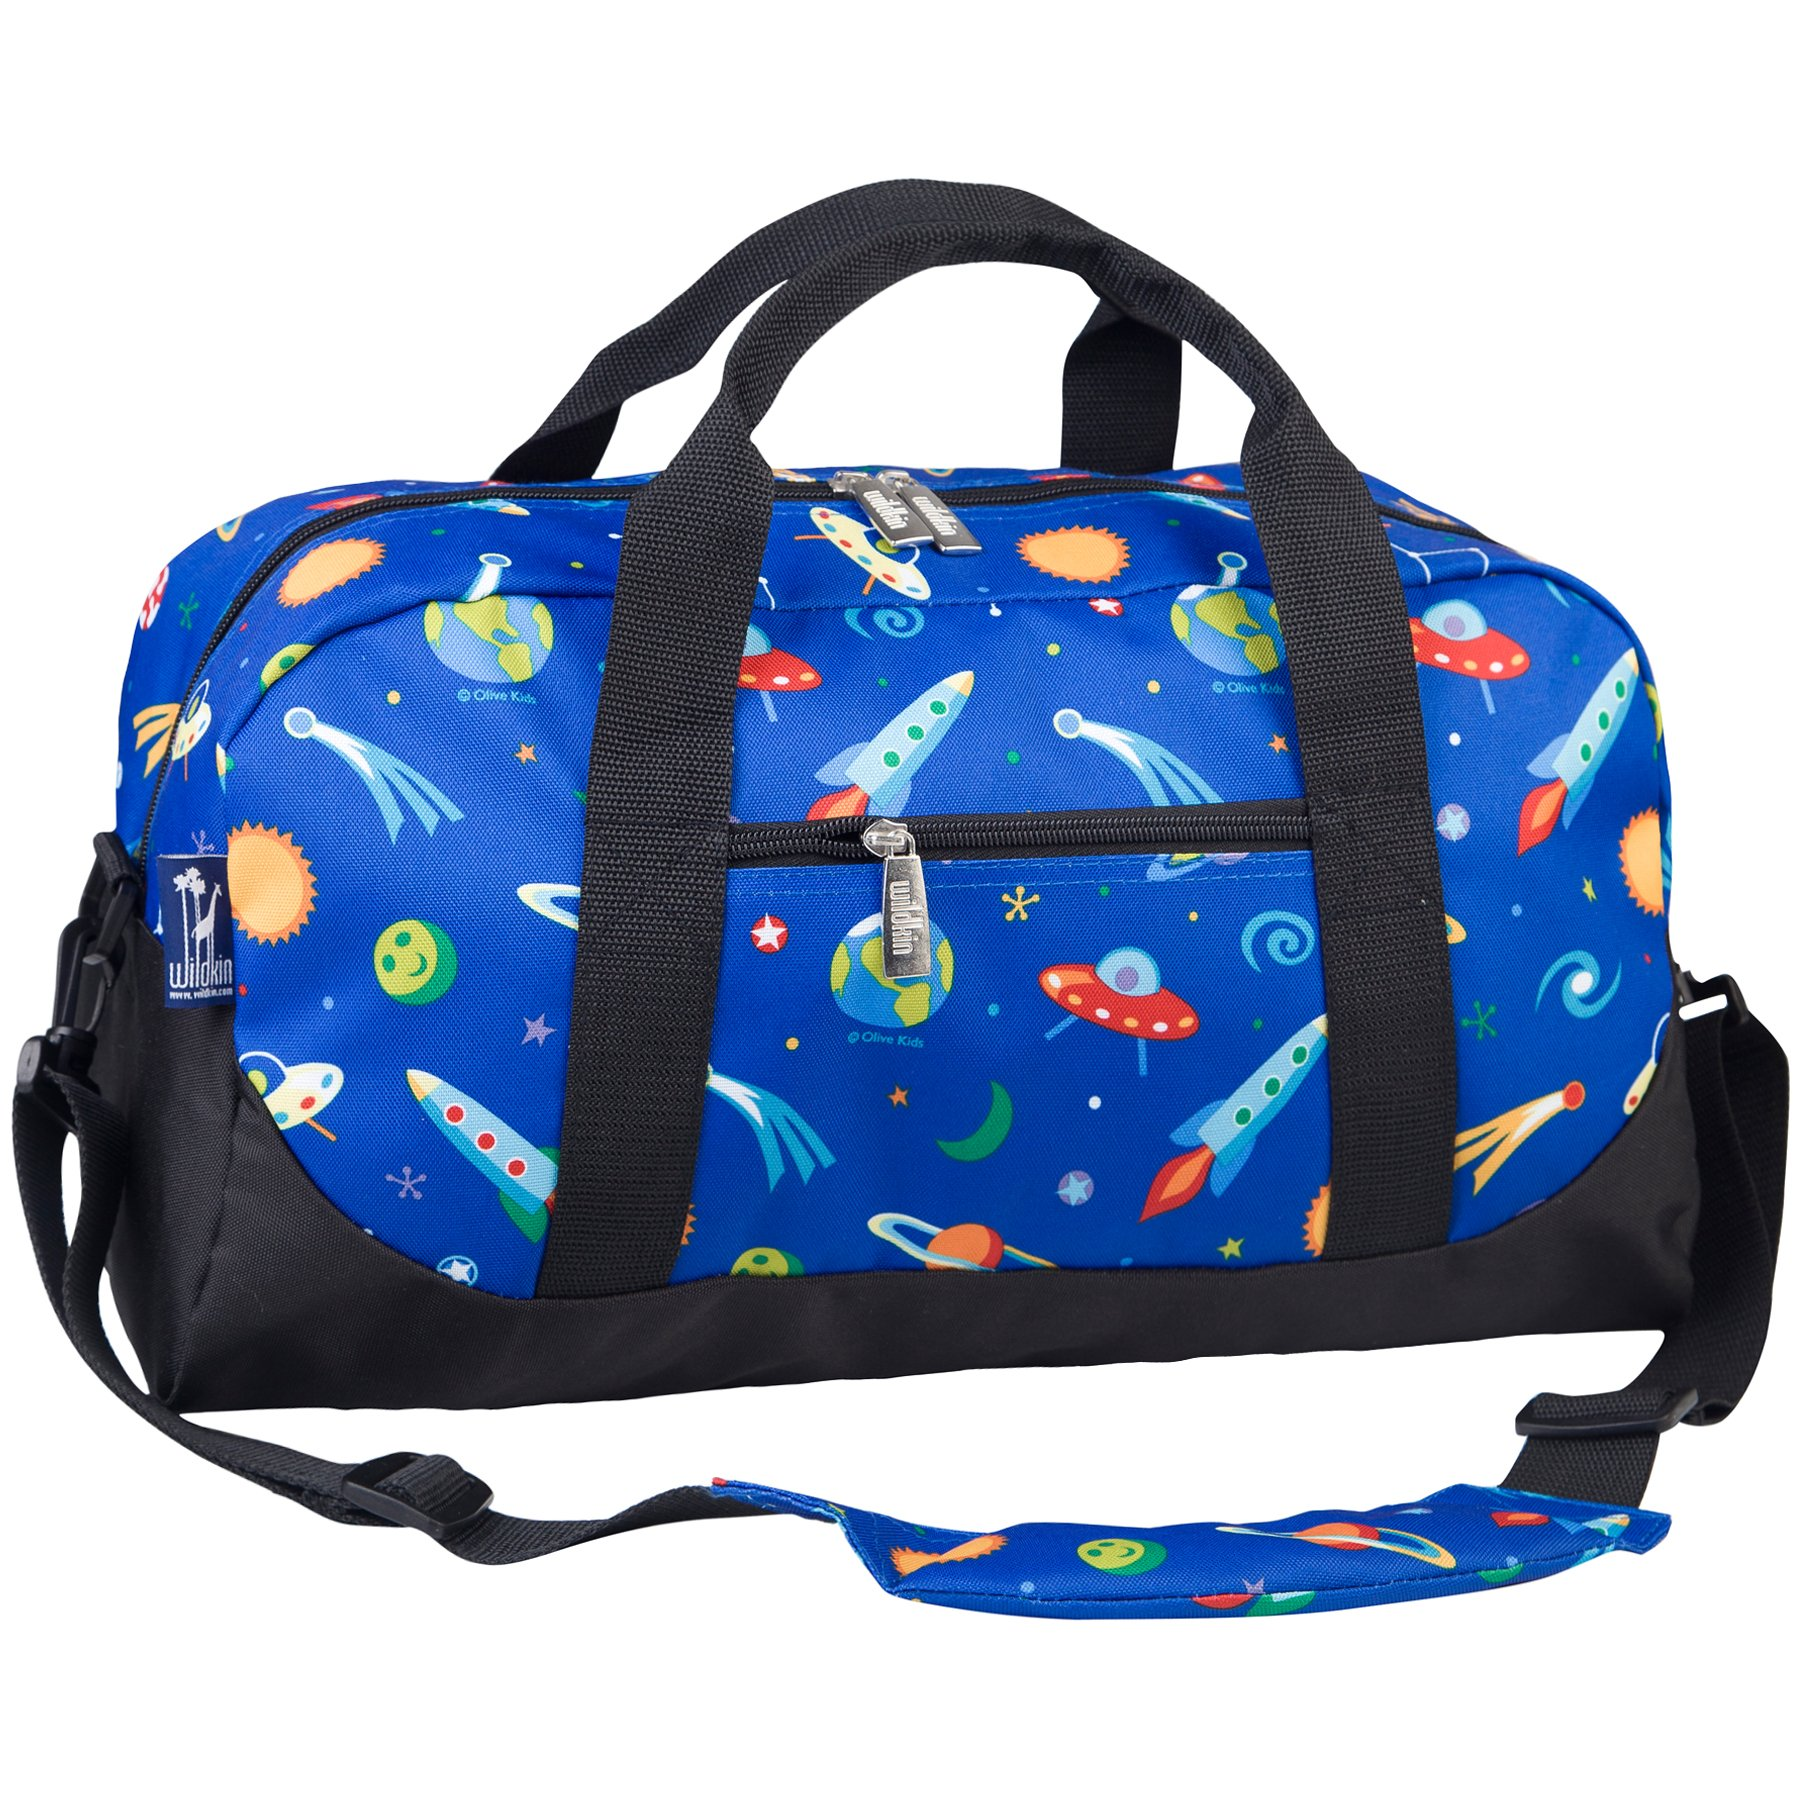 Wildkin Overnighter Duffel Bag, Features Moisture-Resistant Lining and Padded Shoulder Strap, Perfect for Sleepovers, Sports Practice, and Travel, Olive Kids Designs – Out of this World by Wildkin (Image #2)